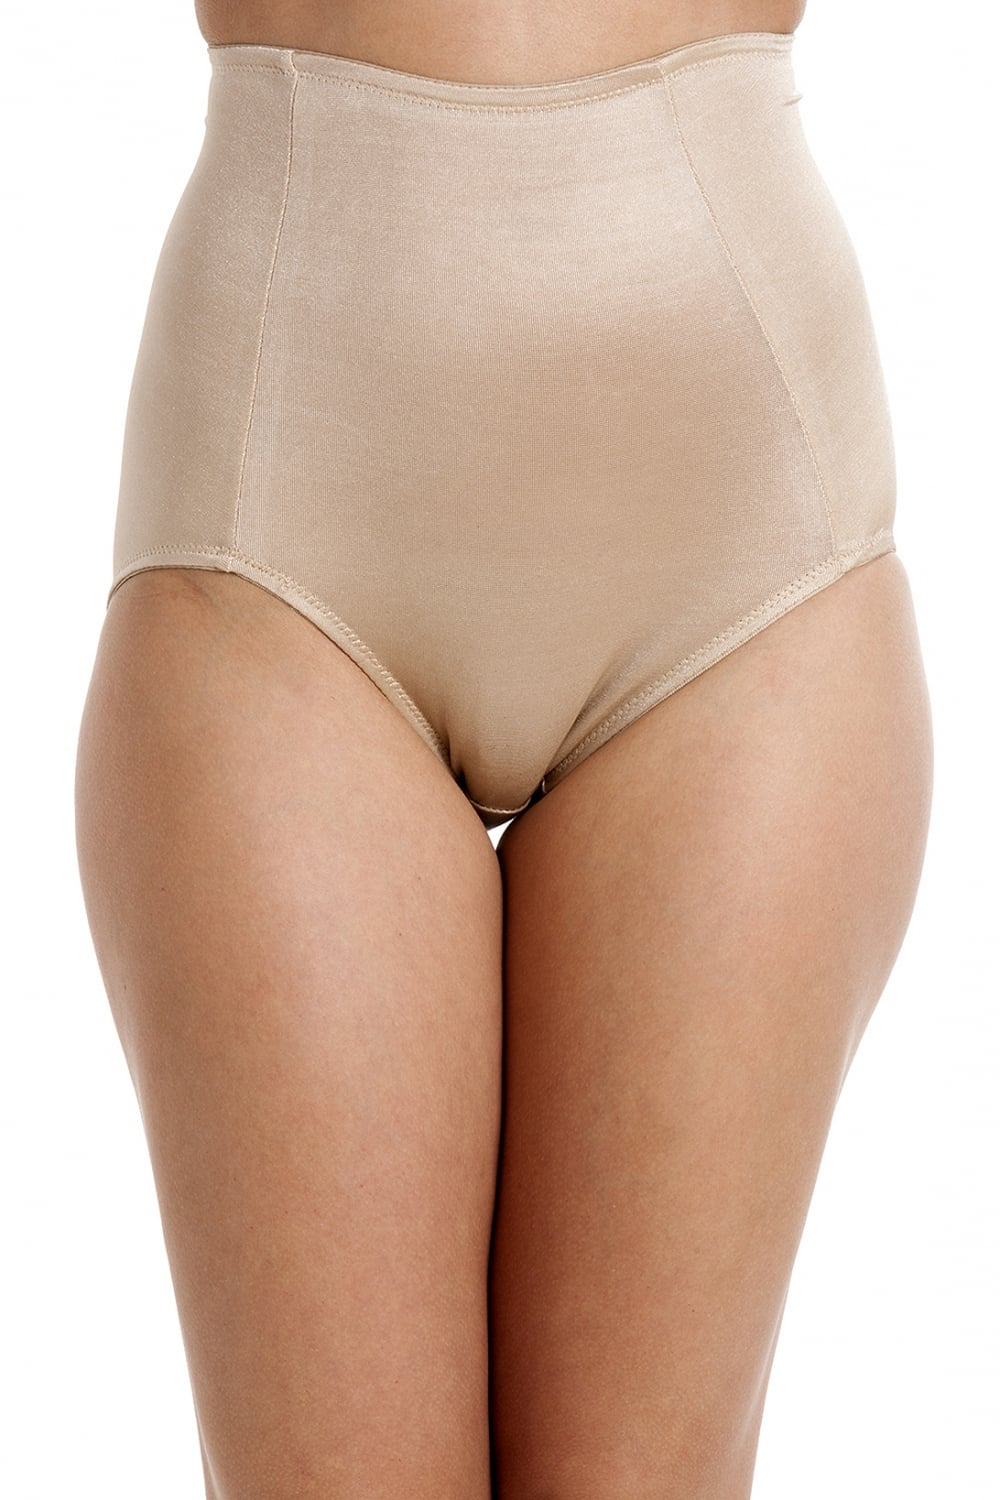 reasonable price purchase cheap free shipping Beige Shapewear Full Support Control Briefs